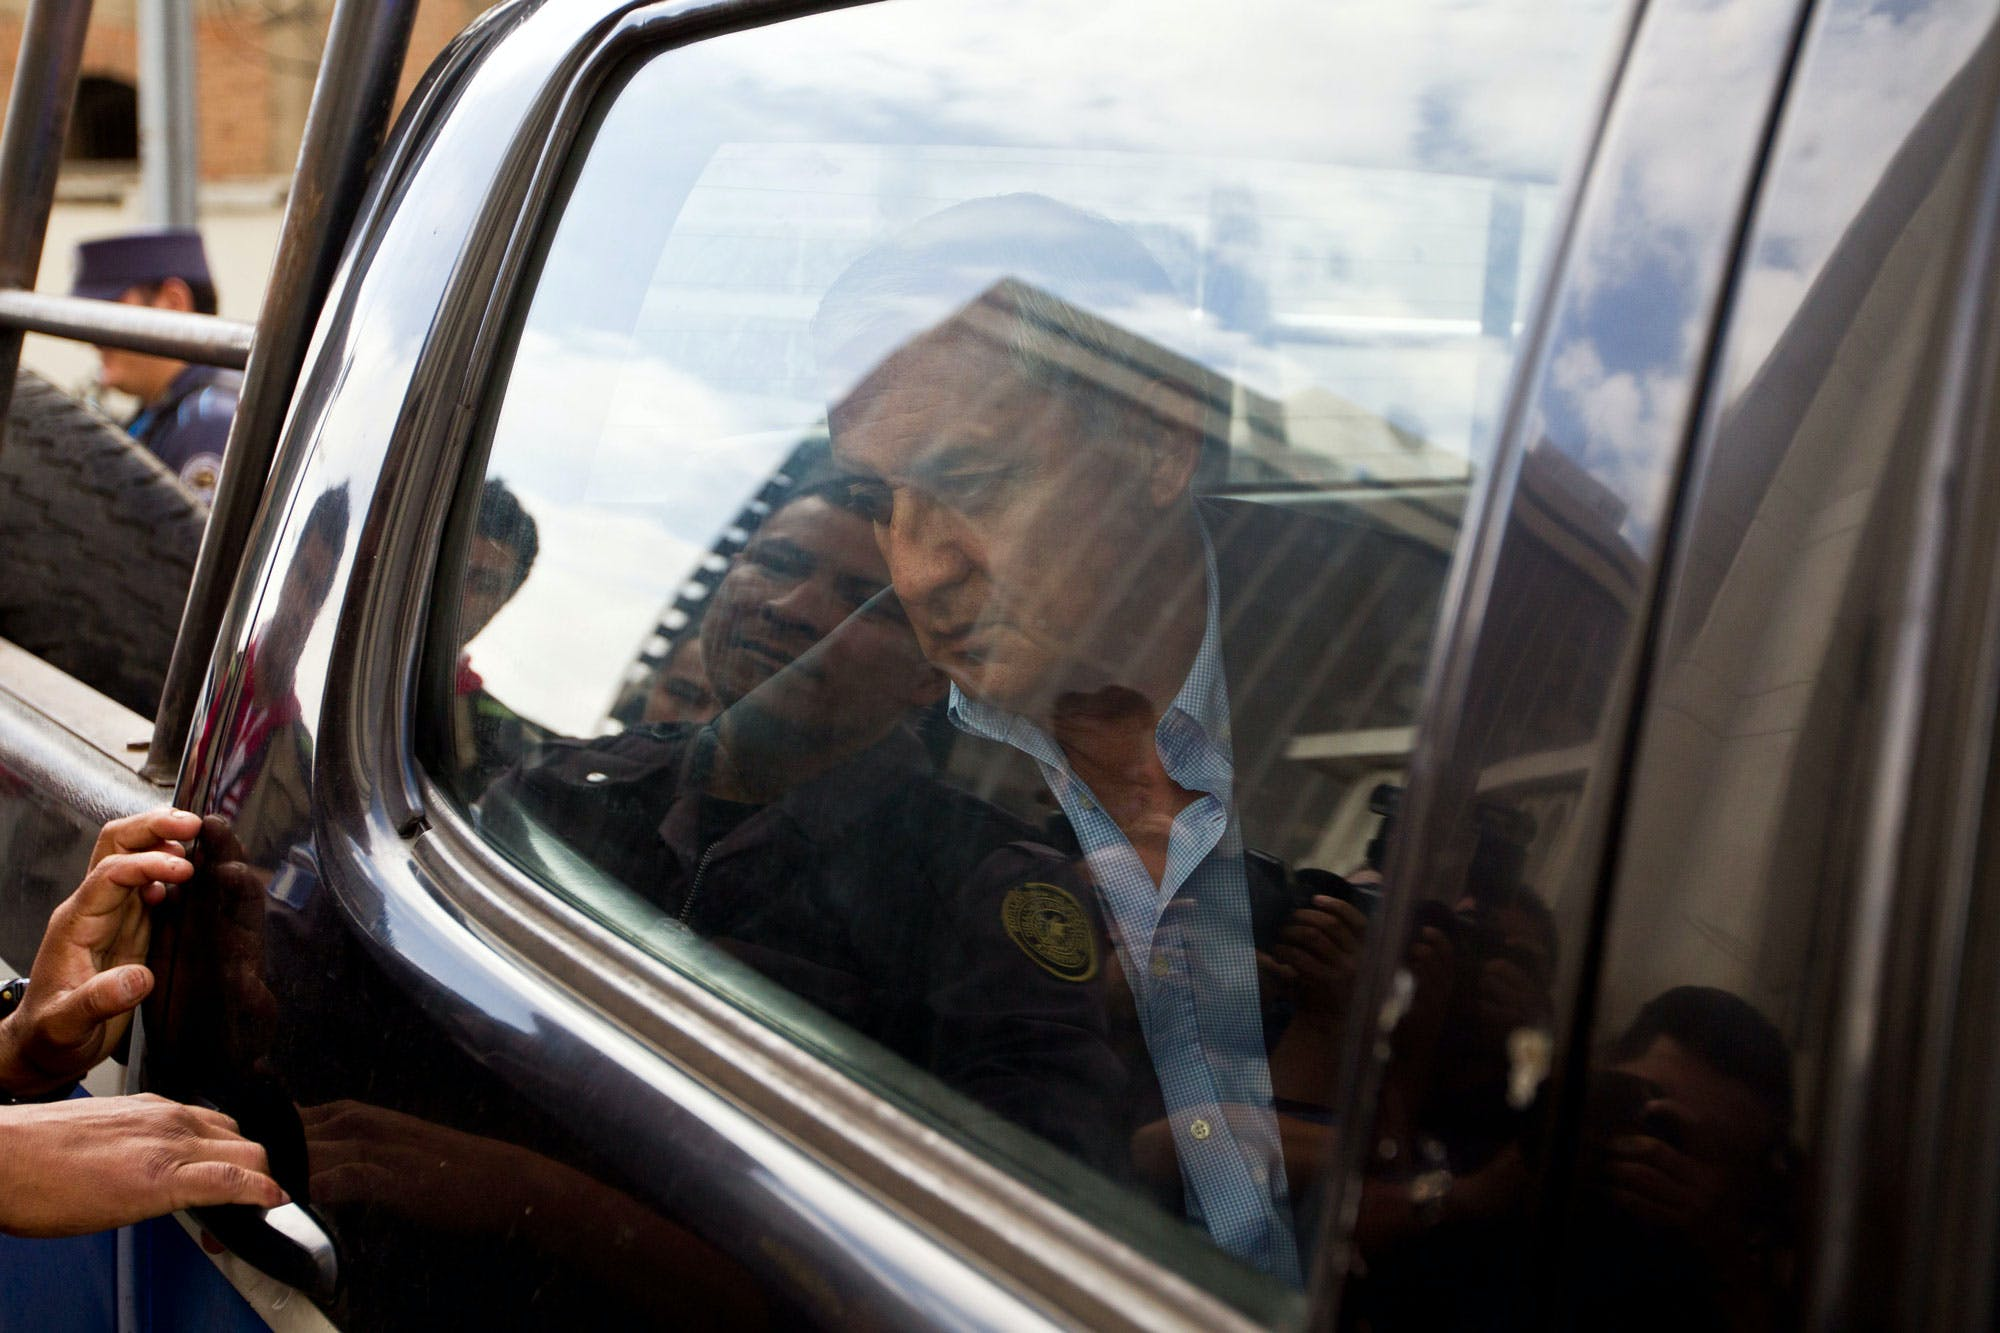 Guatemalan former President Otto Perez Molina arrives in a police vehicle to a court hearing in Guatemala City, Monday, June 13, 2016. The ex-president faces charges of money laundering and conspiracy. Three senior Guatemalan cabinet, all who served under Perez Molina, were arrested Saturday on corruption charges, and authorities said they were seeking to detain two more as part of a continuing crackdown that has seen the former president and his vice president jailed. (AP Photo/Moises Castillo)